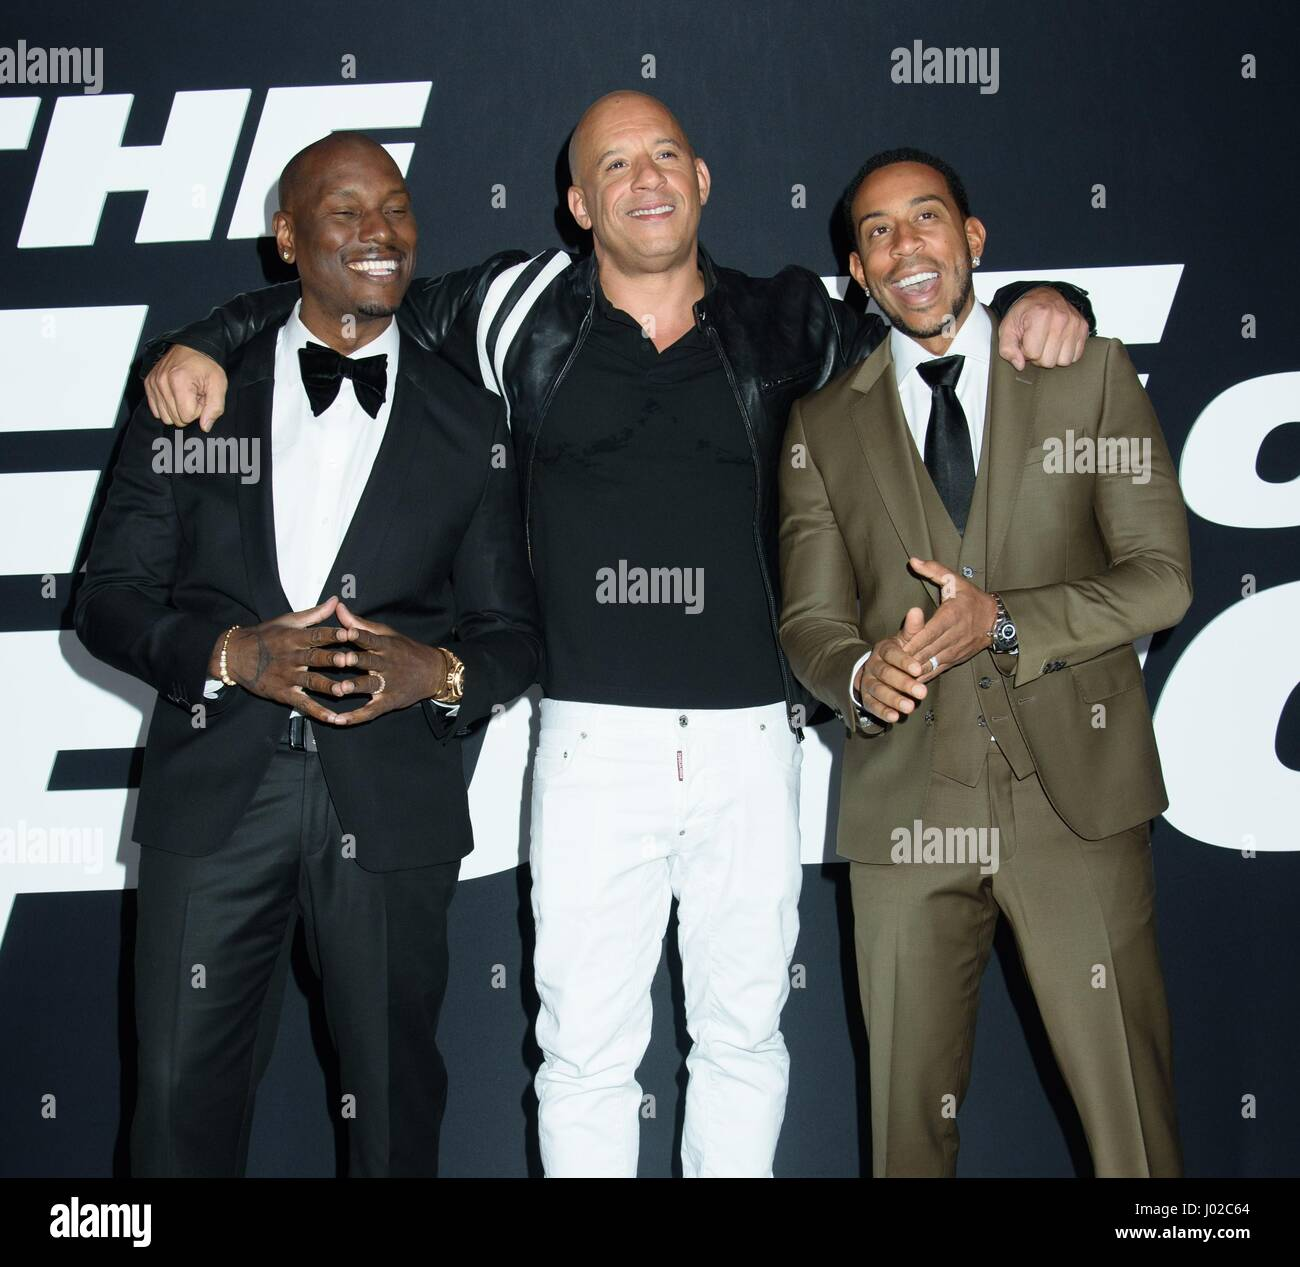 Pics photos tyrese gibson picture 8 - Tyrese Gibson Vin Diesel And Ludacris At Arrivals For The Fate Of The Furious Premiere Radio City Music Hall New York Ny April 8 2017